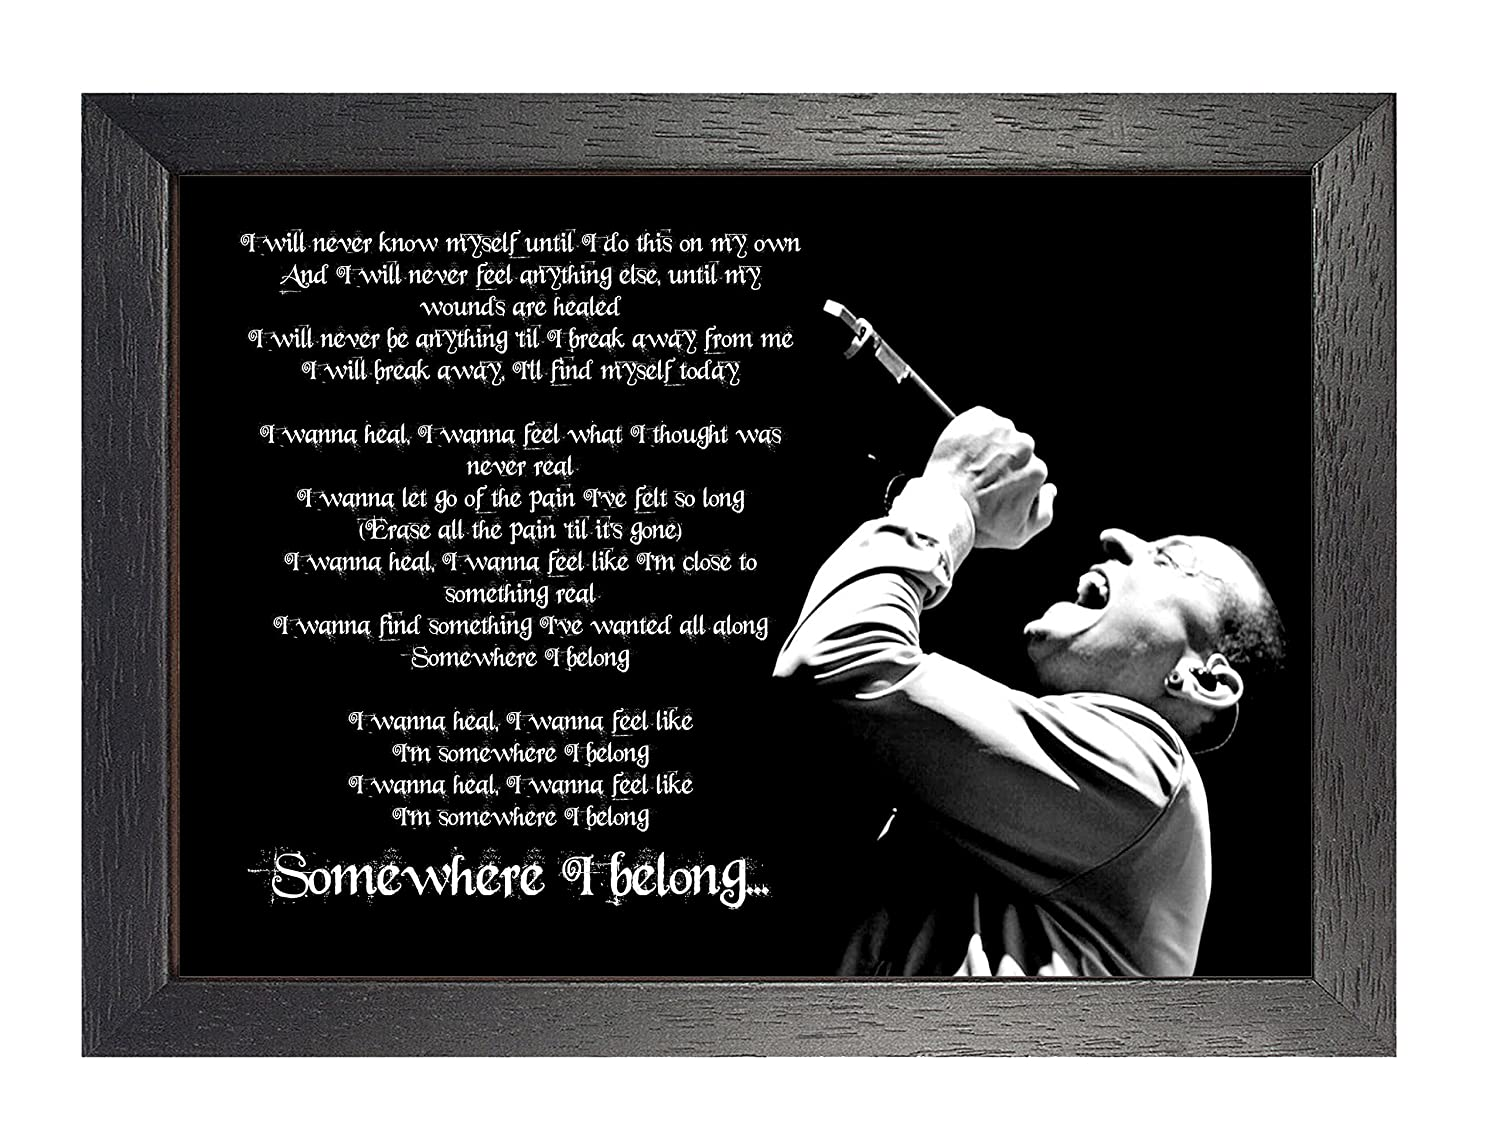 Somewhere I Belong Linkin Park Chester Bennington A4 Poster Framed Great Lyrics Rock Metal Album Cover Design Music Band Best Photo